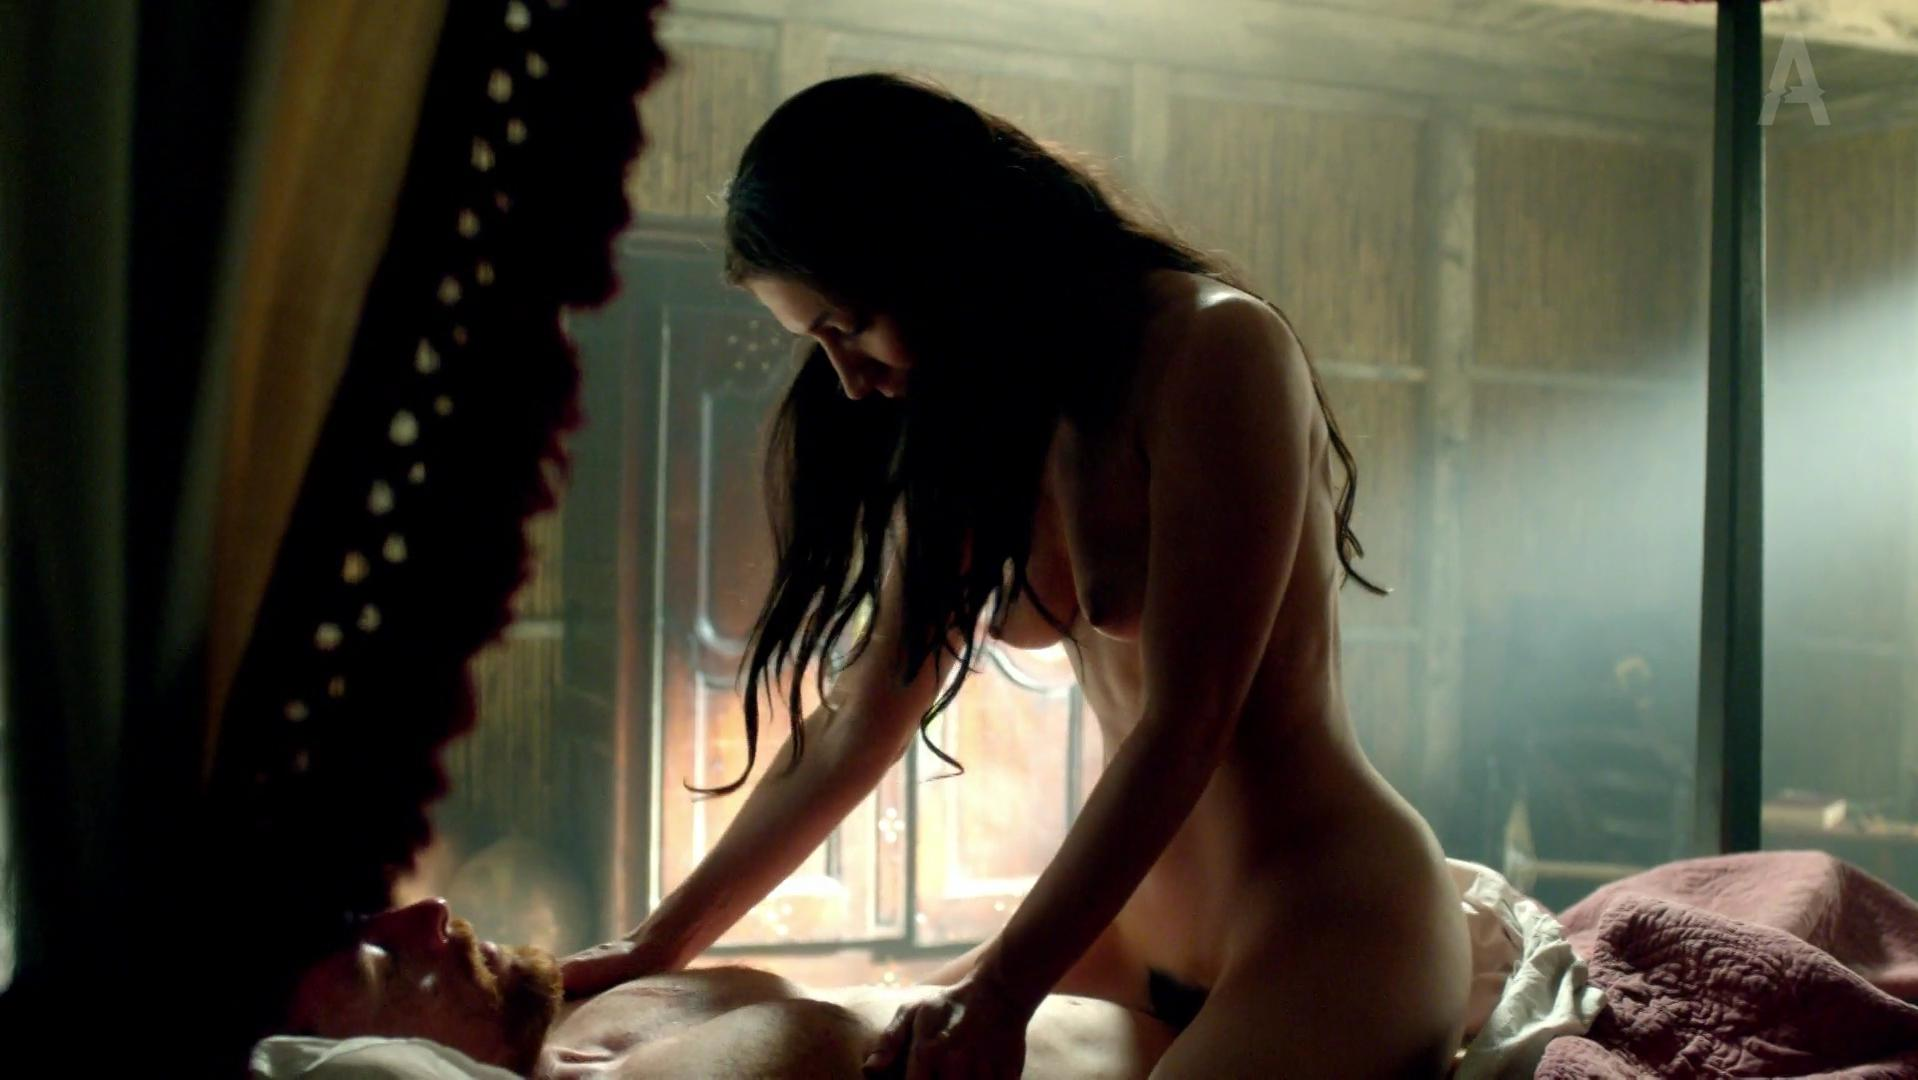 Louise Barnes nude, Jessica Parker Kennedy sexy - Black Sails s01e04 (2014)